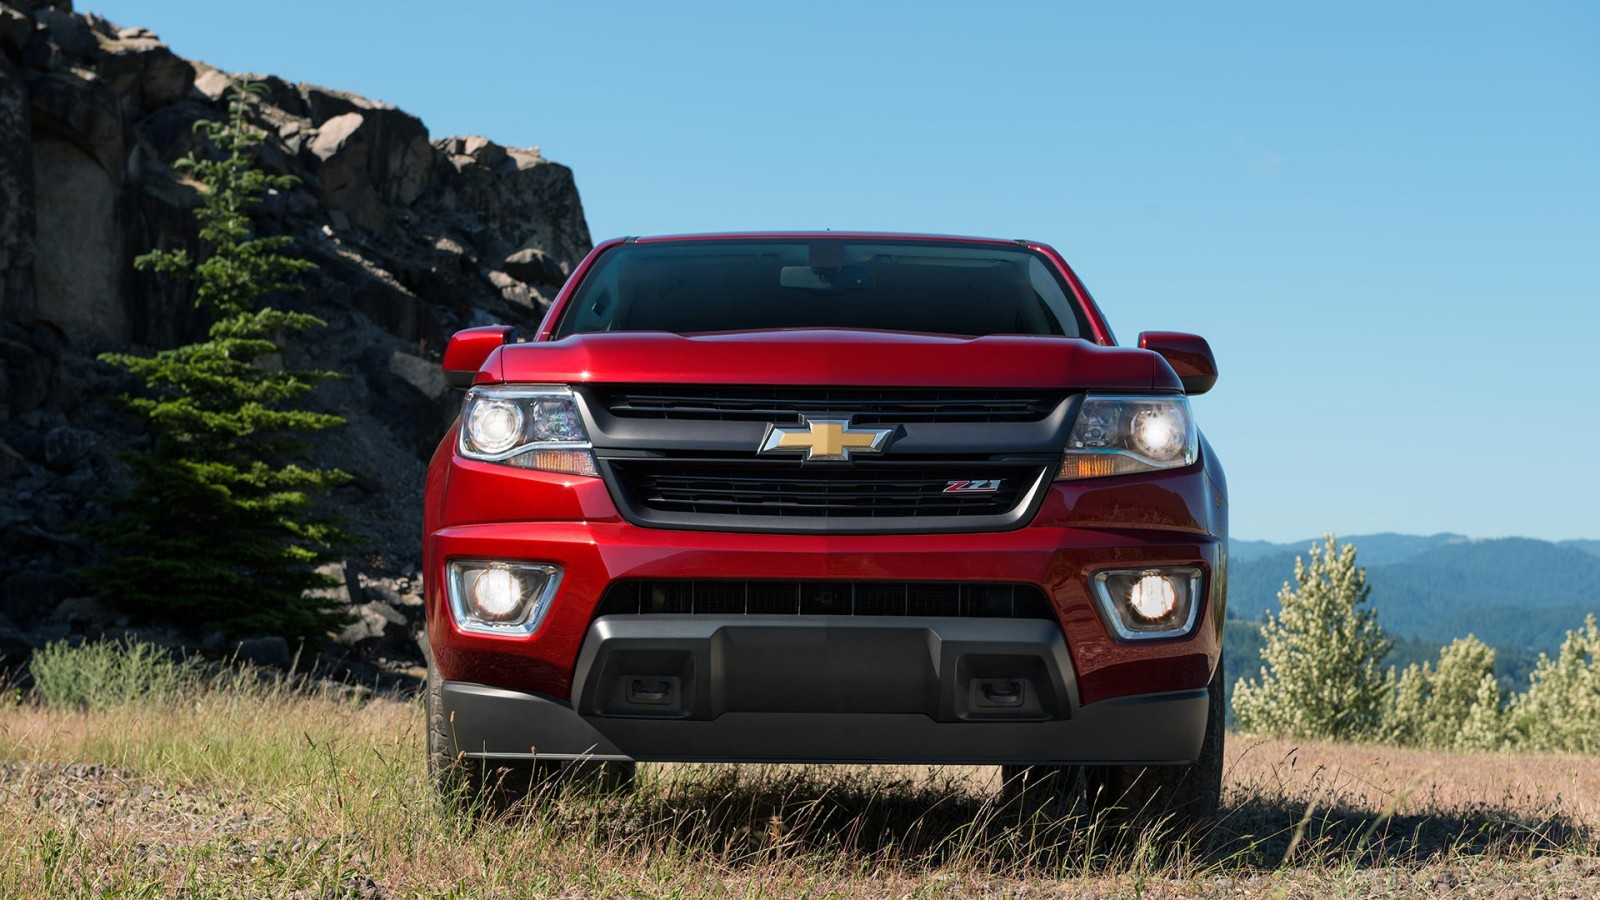 informations crew bestcarmag photos com articles makes colorado chevrolet cab